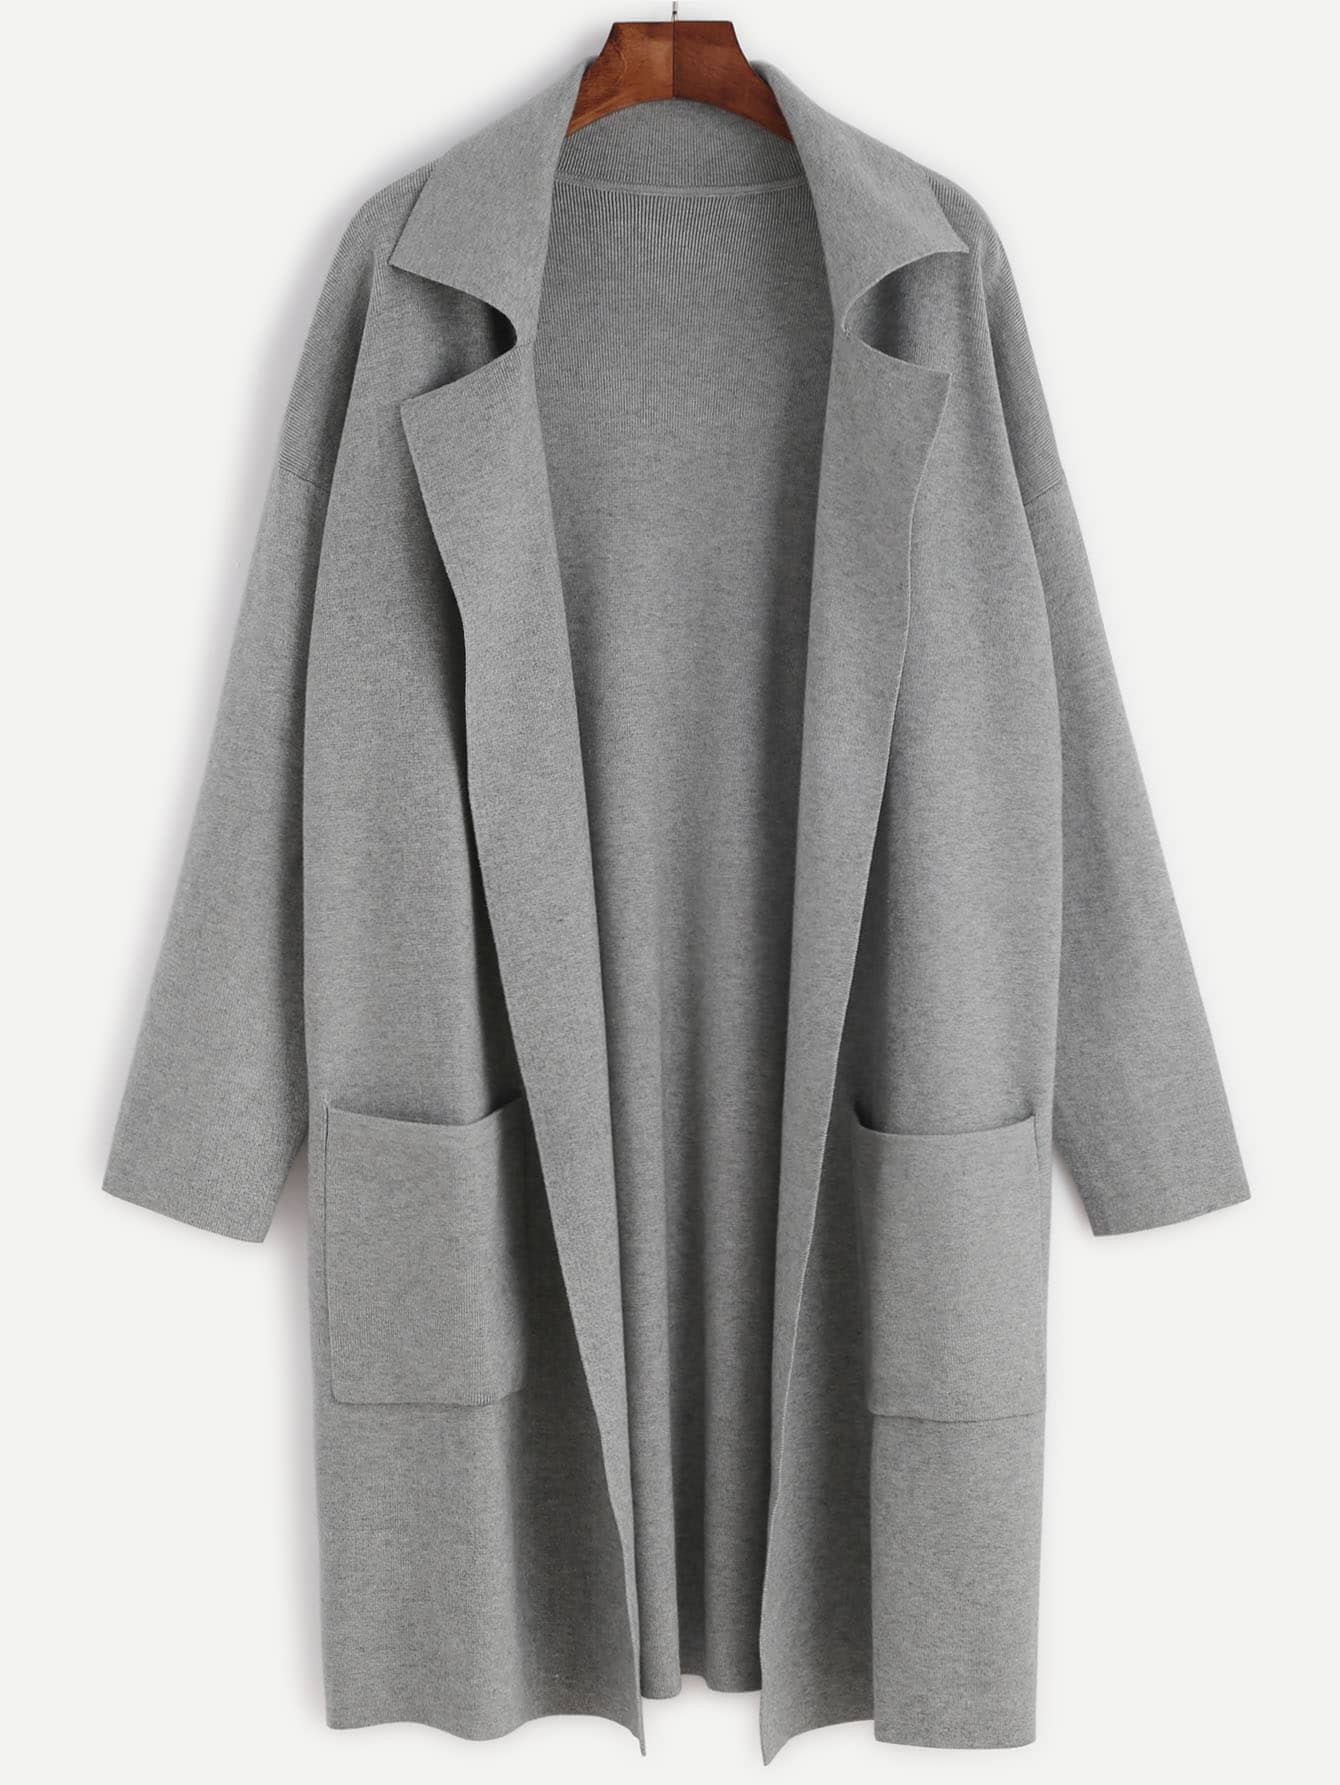 Heather Grey Drop Shoulder Open Front Sweater Coat With Pockets sweater160817709